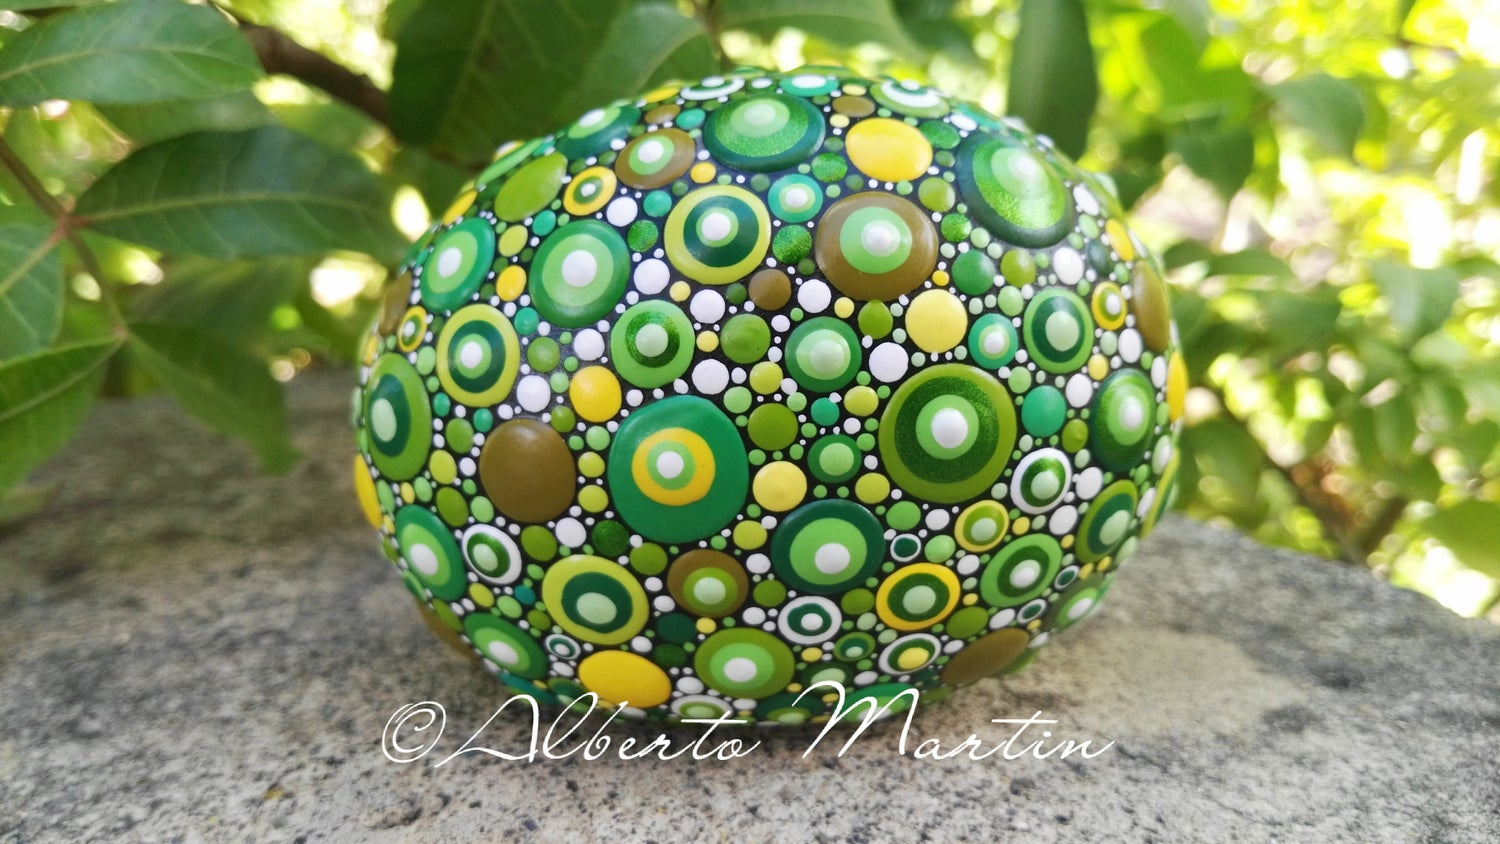 Image of Lucky Dotted painted Stone by Alberto Martin